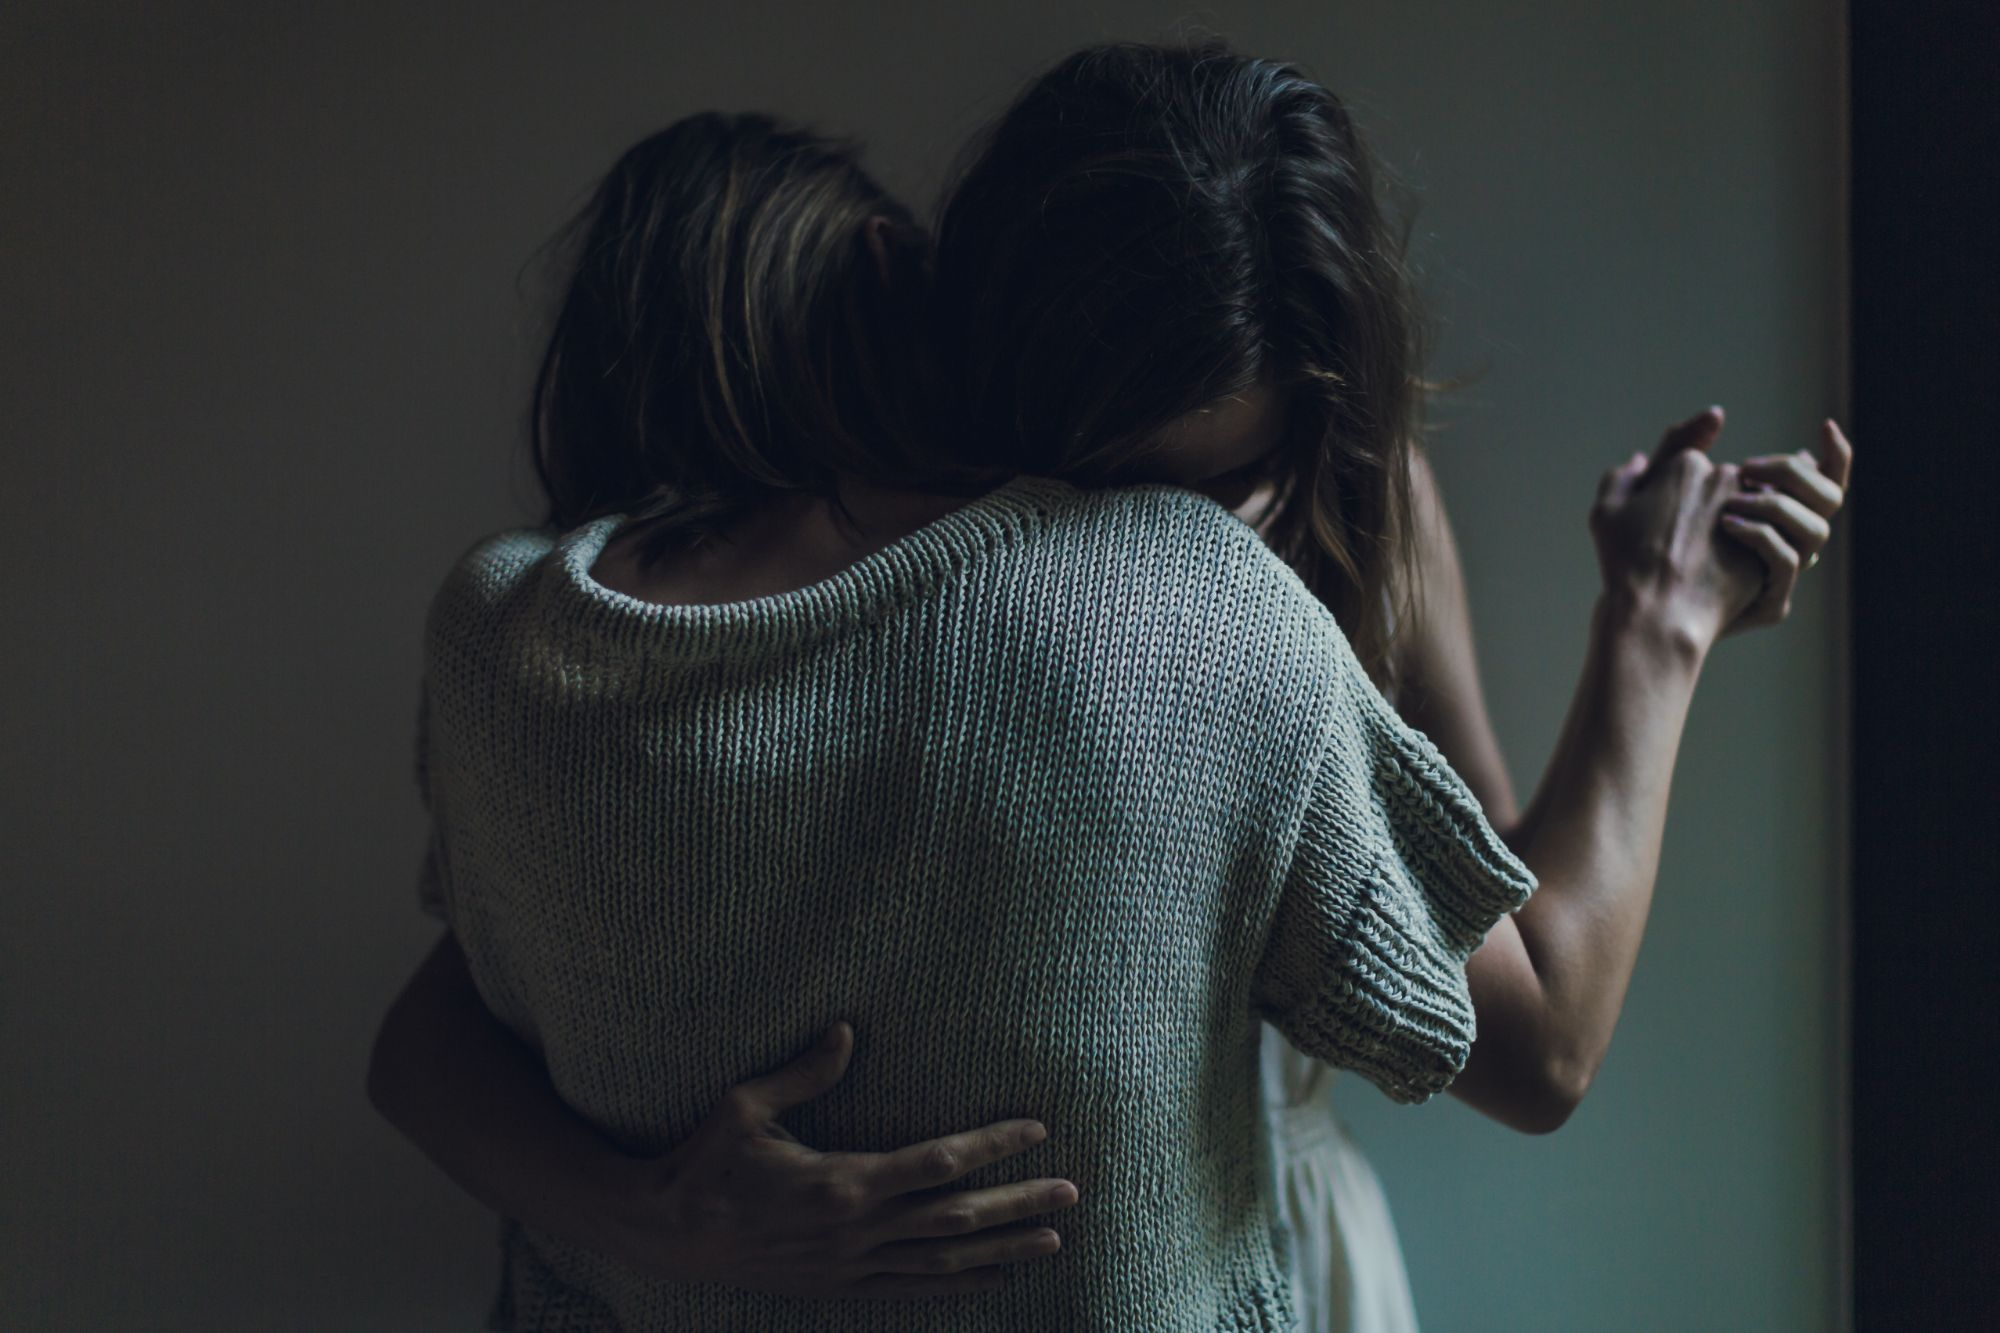 Image of two women embracing.